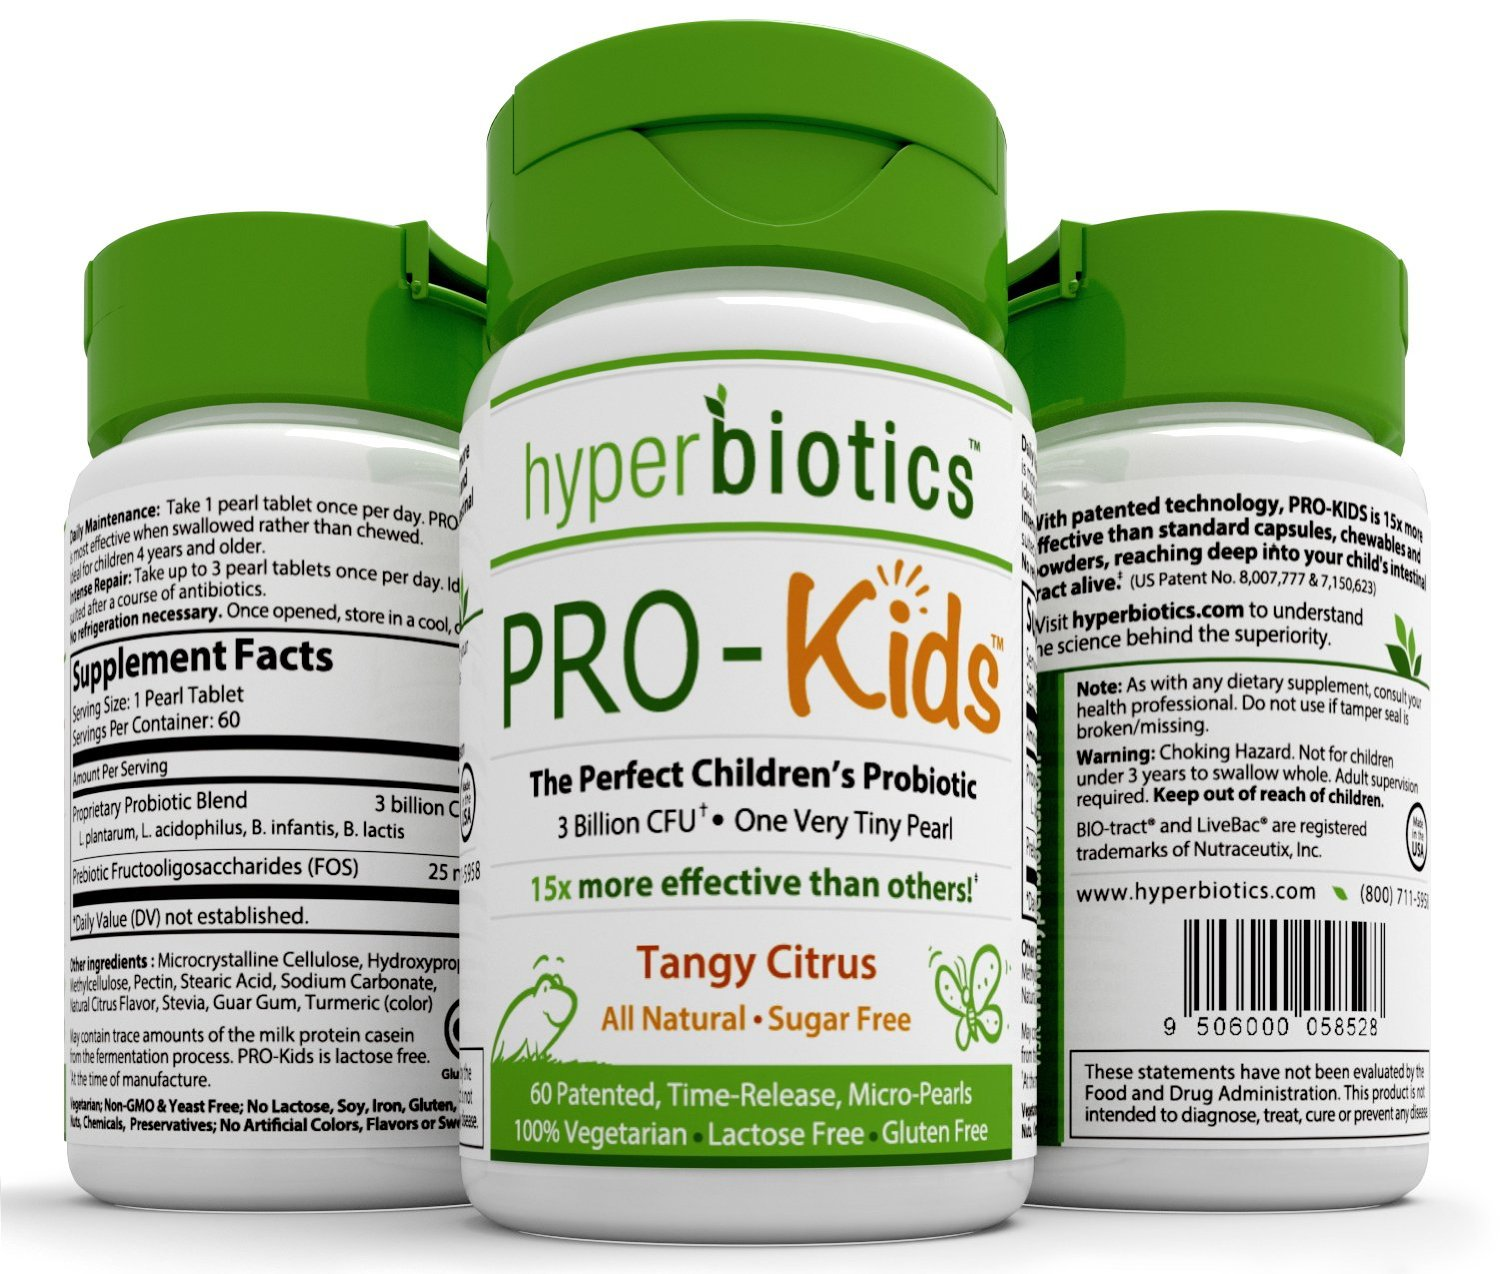 Hyperbiotics PRO Kids Supplement